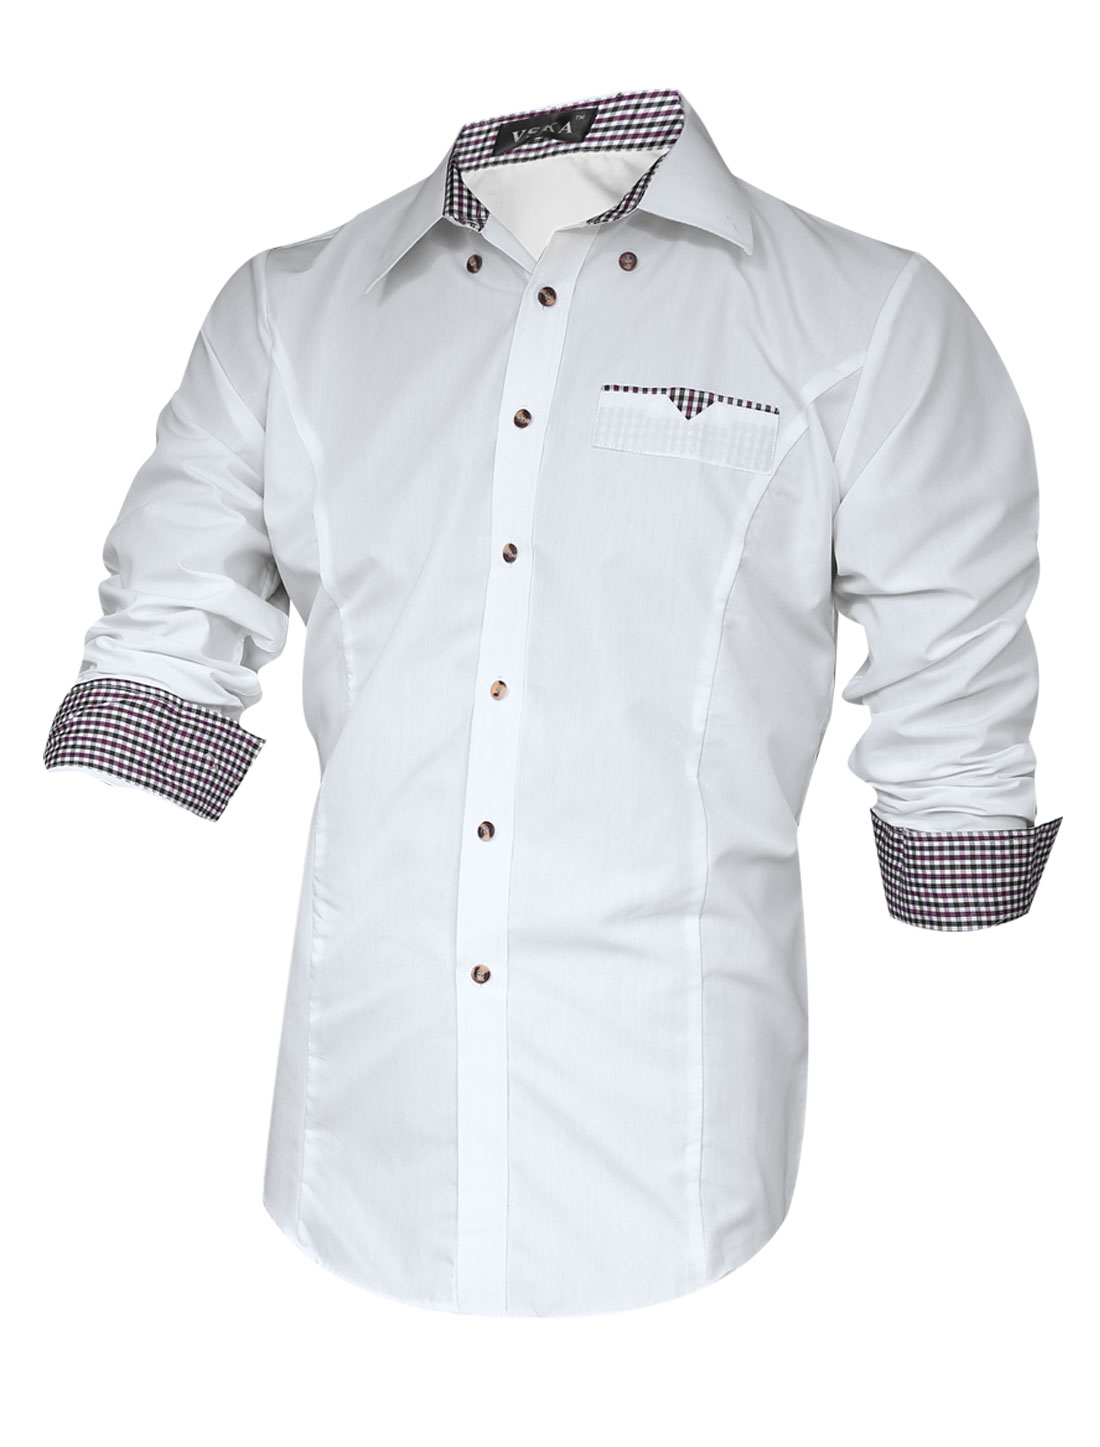 Men Contrast Plaids Detail Panel Slim Cut Button Down Shirt White M